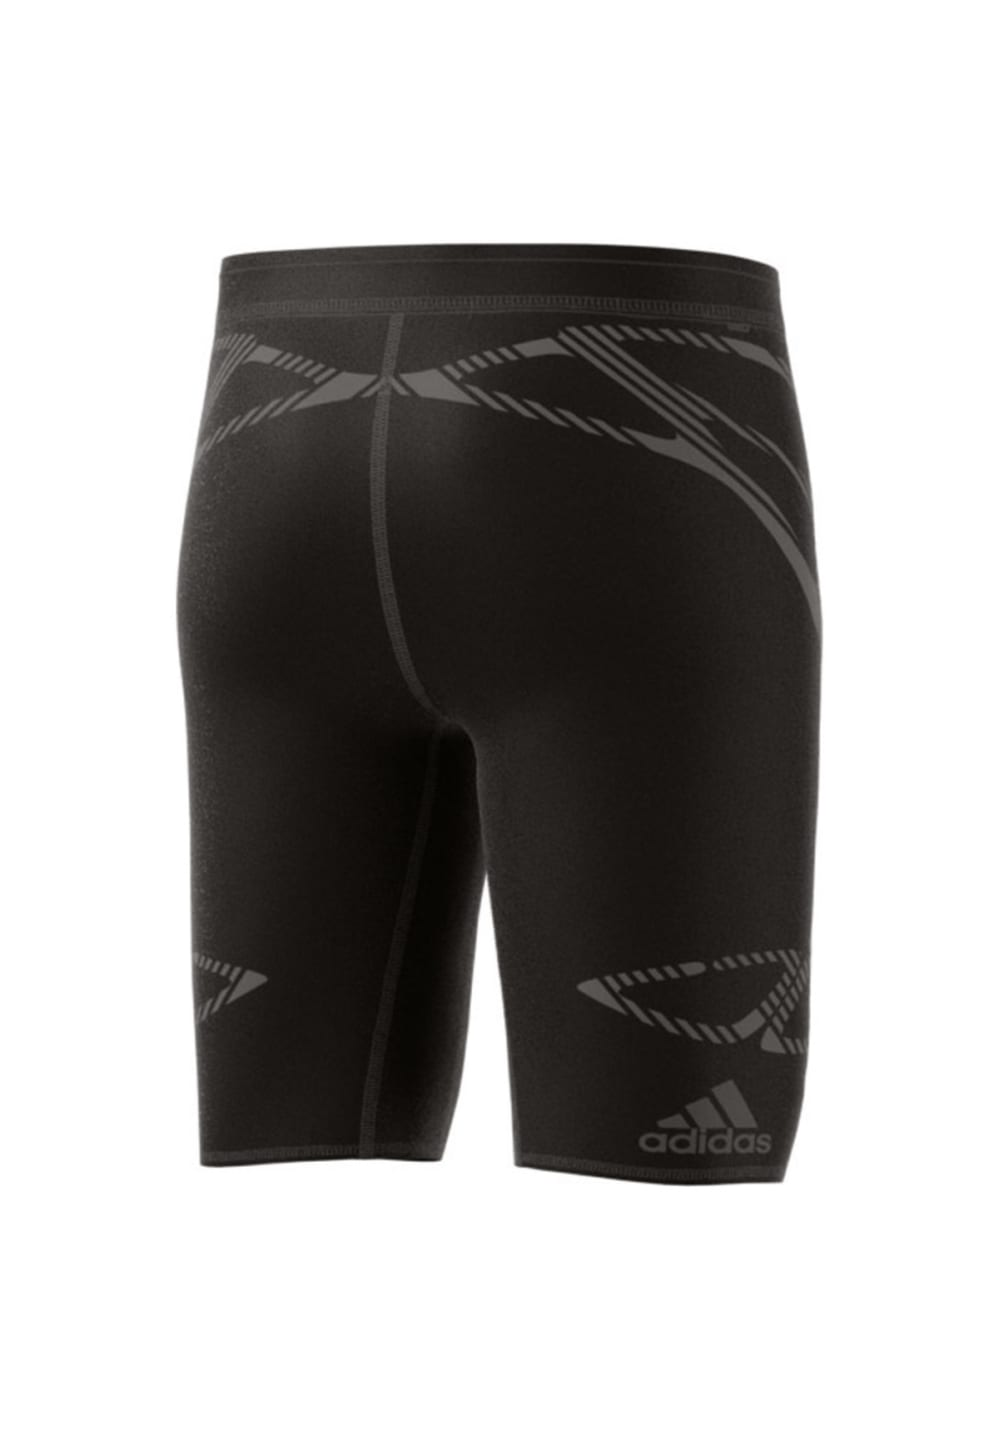 ebae4fb00387 ... adidas adiZero Sprintweb Short Tight - Running trousers for Men - Black.  Back to Overview. 1  2. Previous